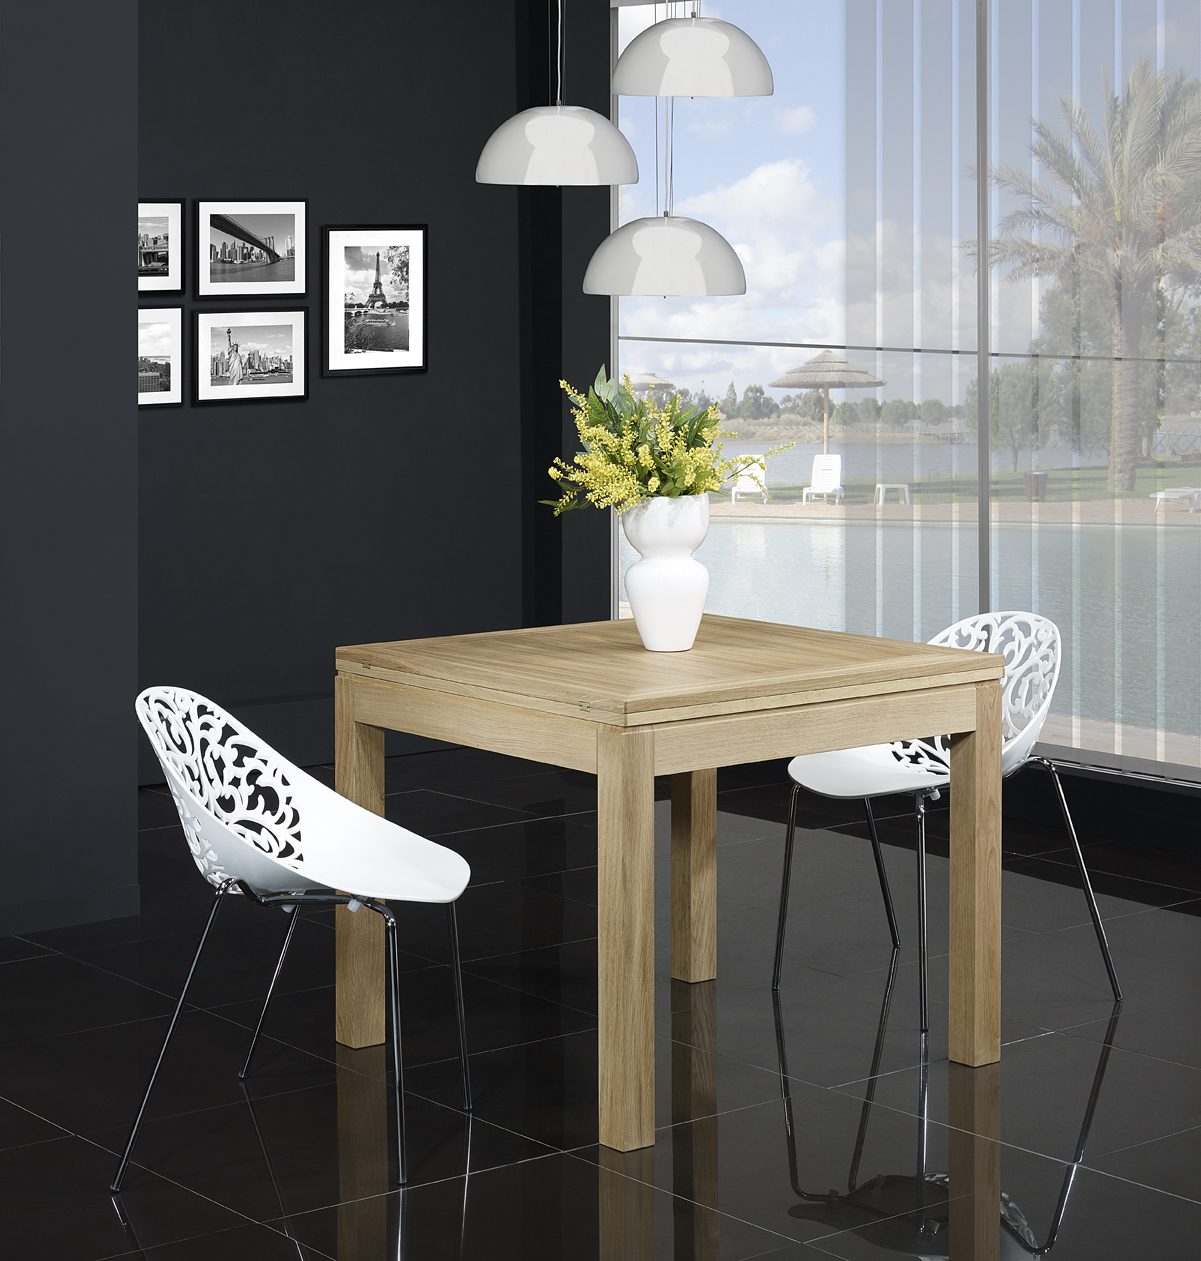 table de repas 90x90 en ch ne massif de style contemporain plateau ouvert 180x90 meuble en. Black Bedroom Furniture Sets. Home Design Ideas